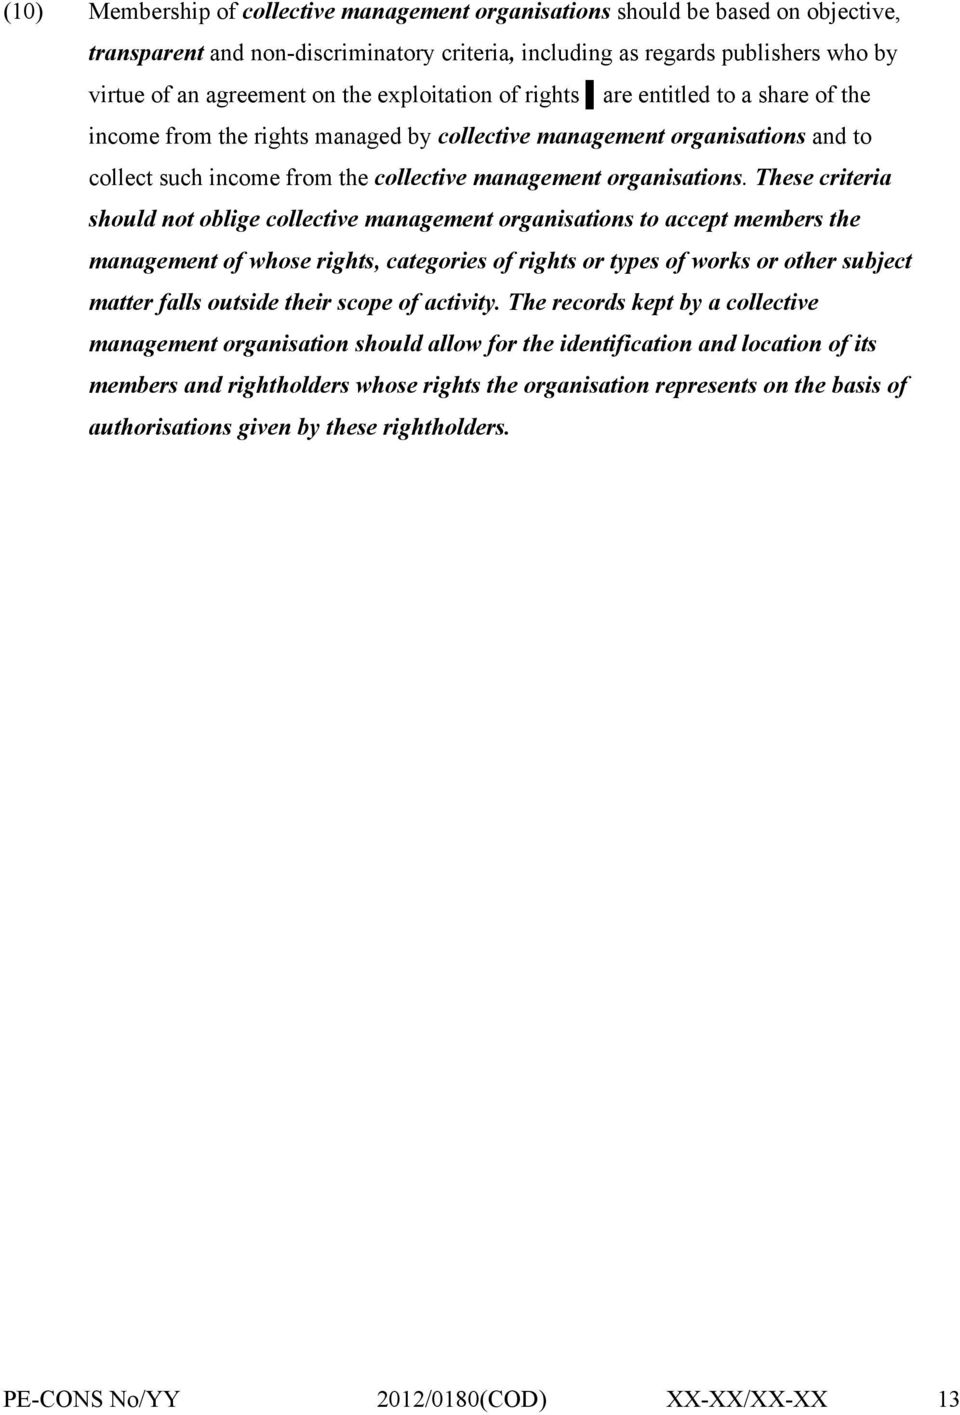 These criteria should not oblige collective management organisations to accept members the management of whose rights, categories of rights or types of works or other subject matter falls outside